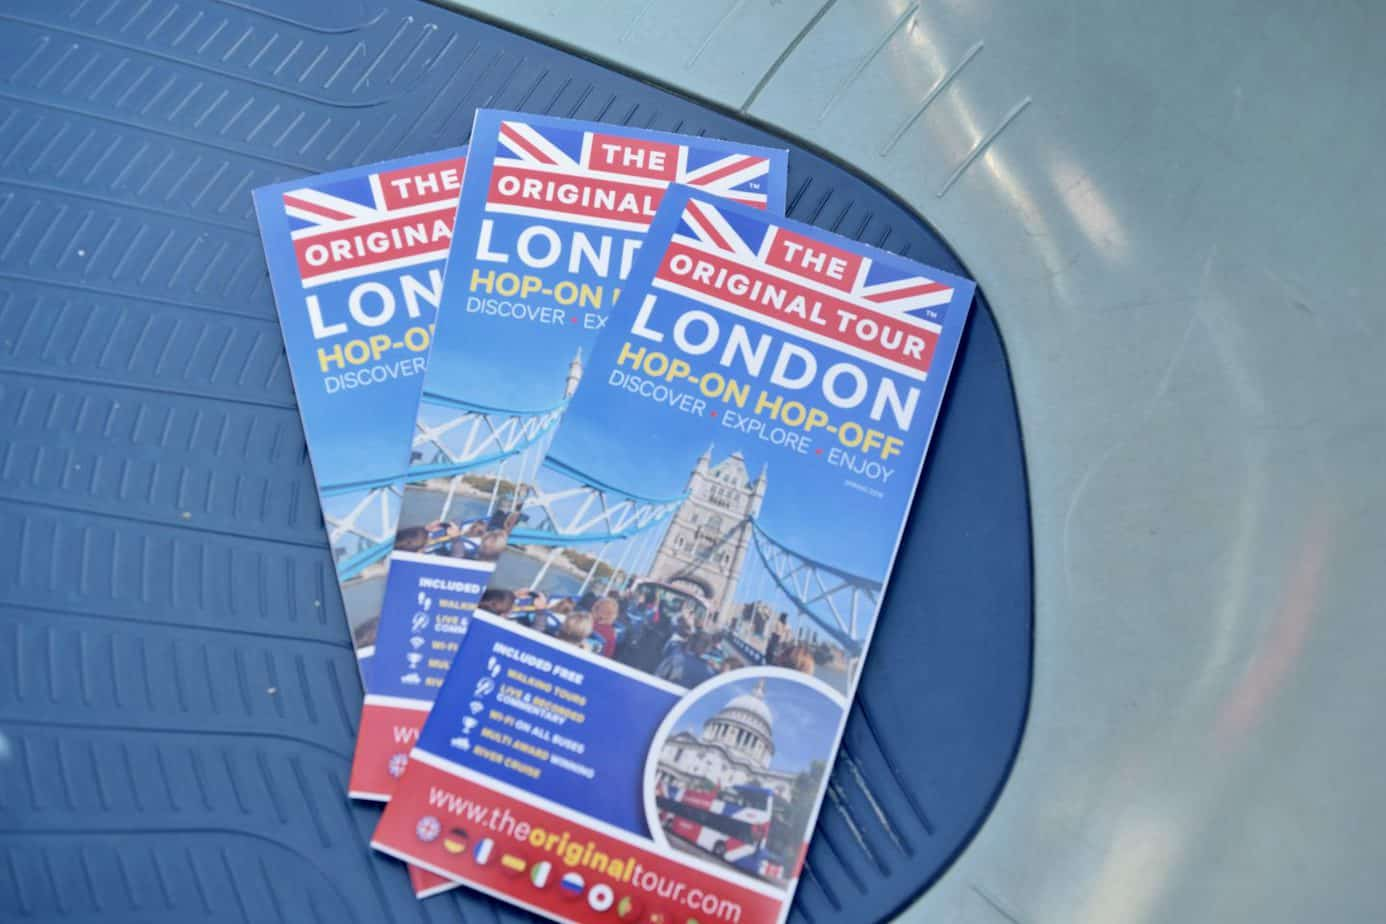 The original London bus tour leaflets available from staff and the head office